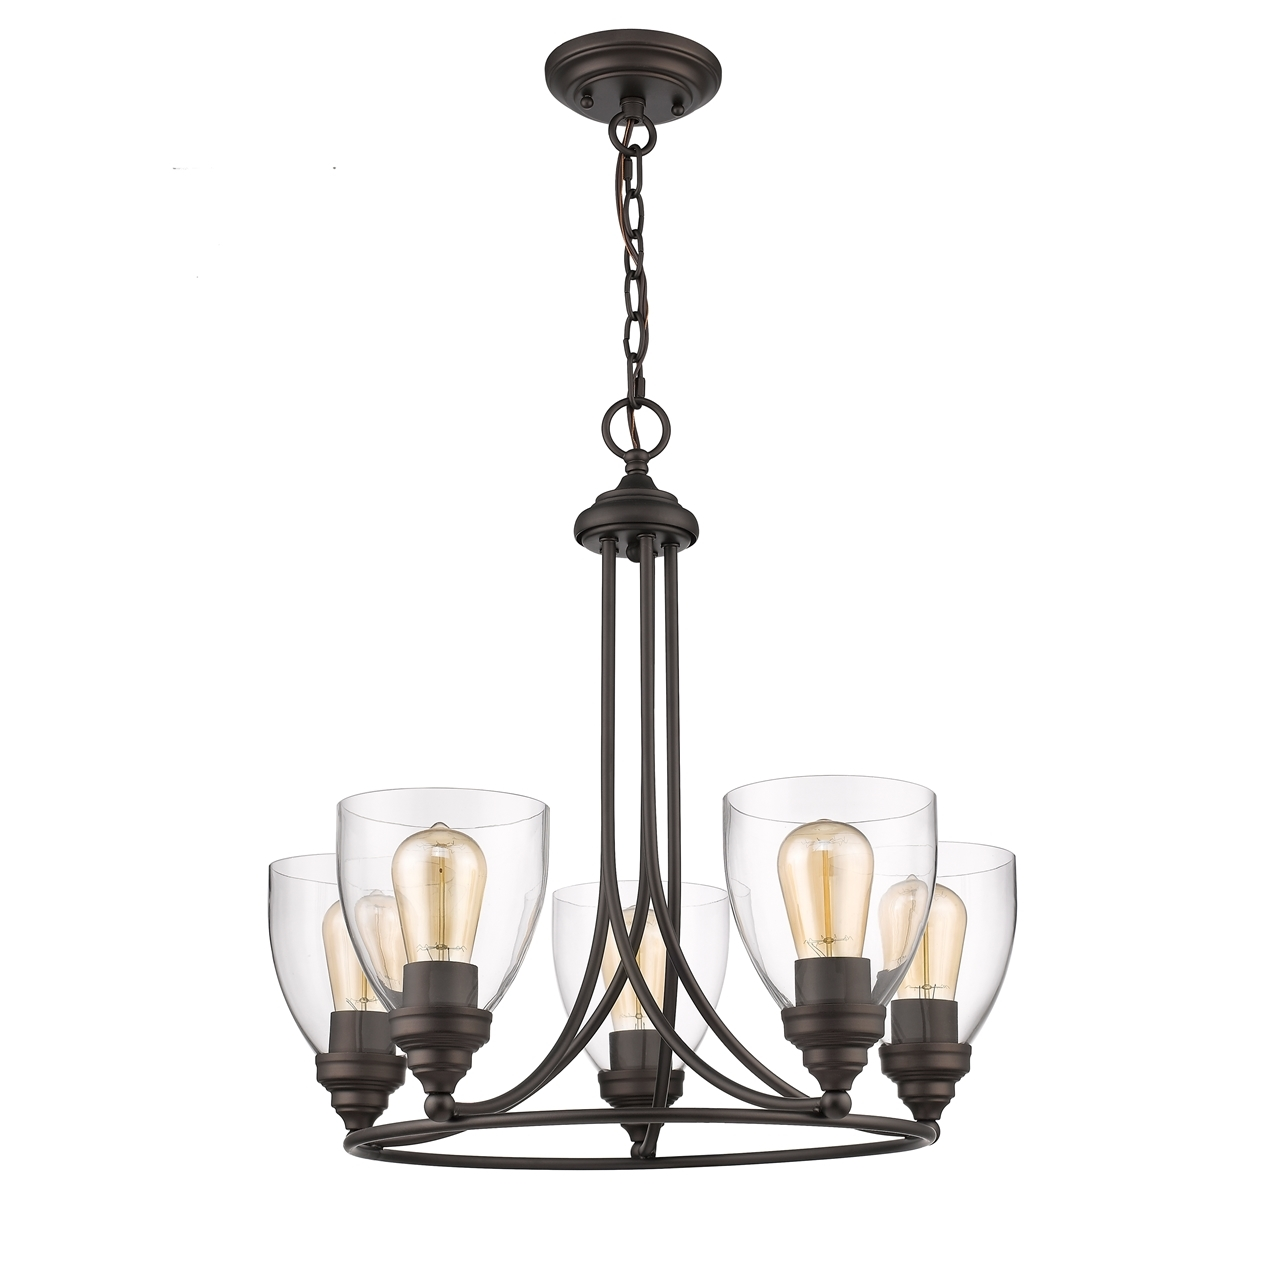 Chloe Lighting Inc Ch2s004rb22 Uc5 Large Chandelier